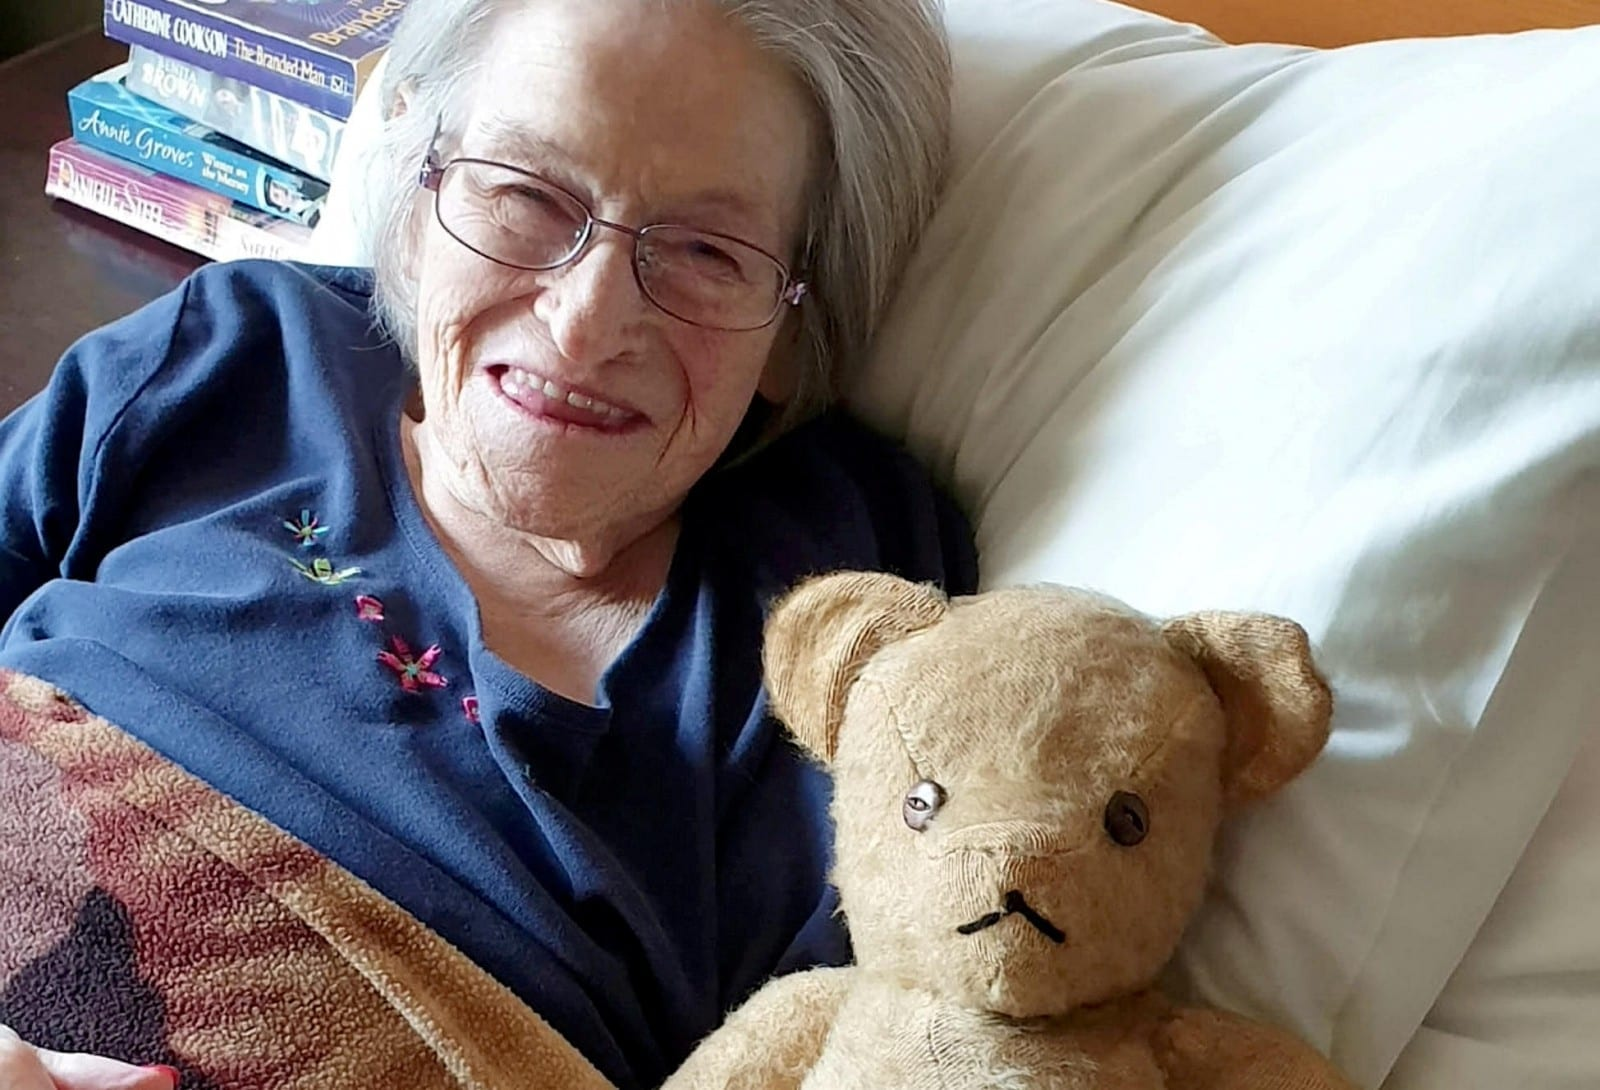 A Woman Who Underwent Childhood Heart Surgery In 1947 Has Been Reunited With The Soft Toy That Was Her Comfort During The Ordeal – 72 Years Later